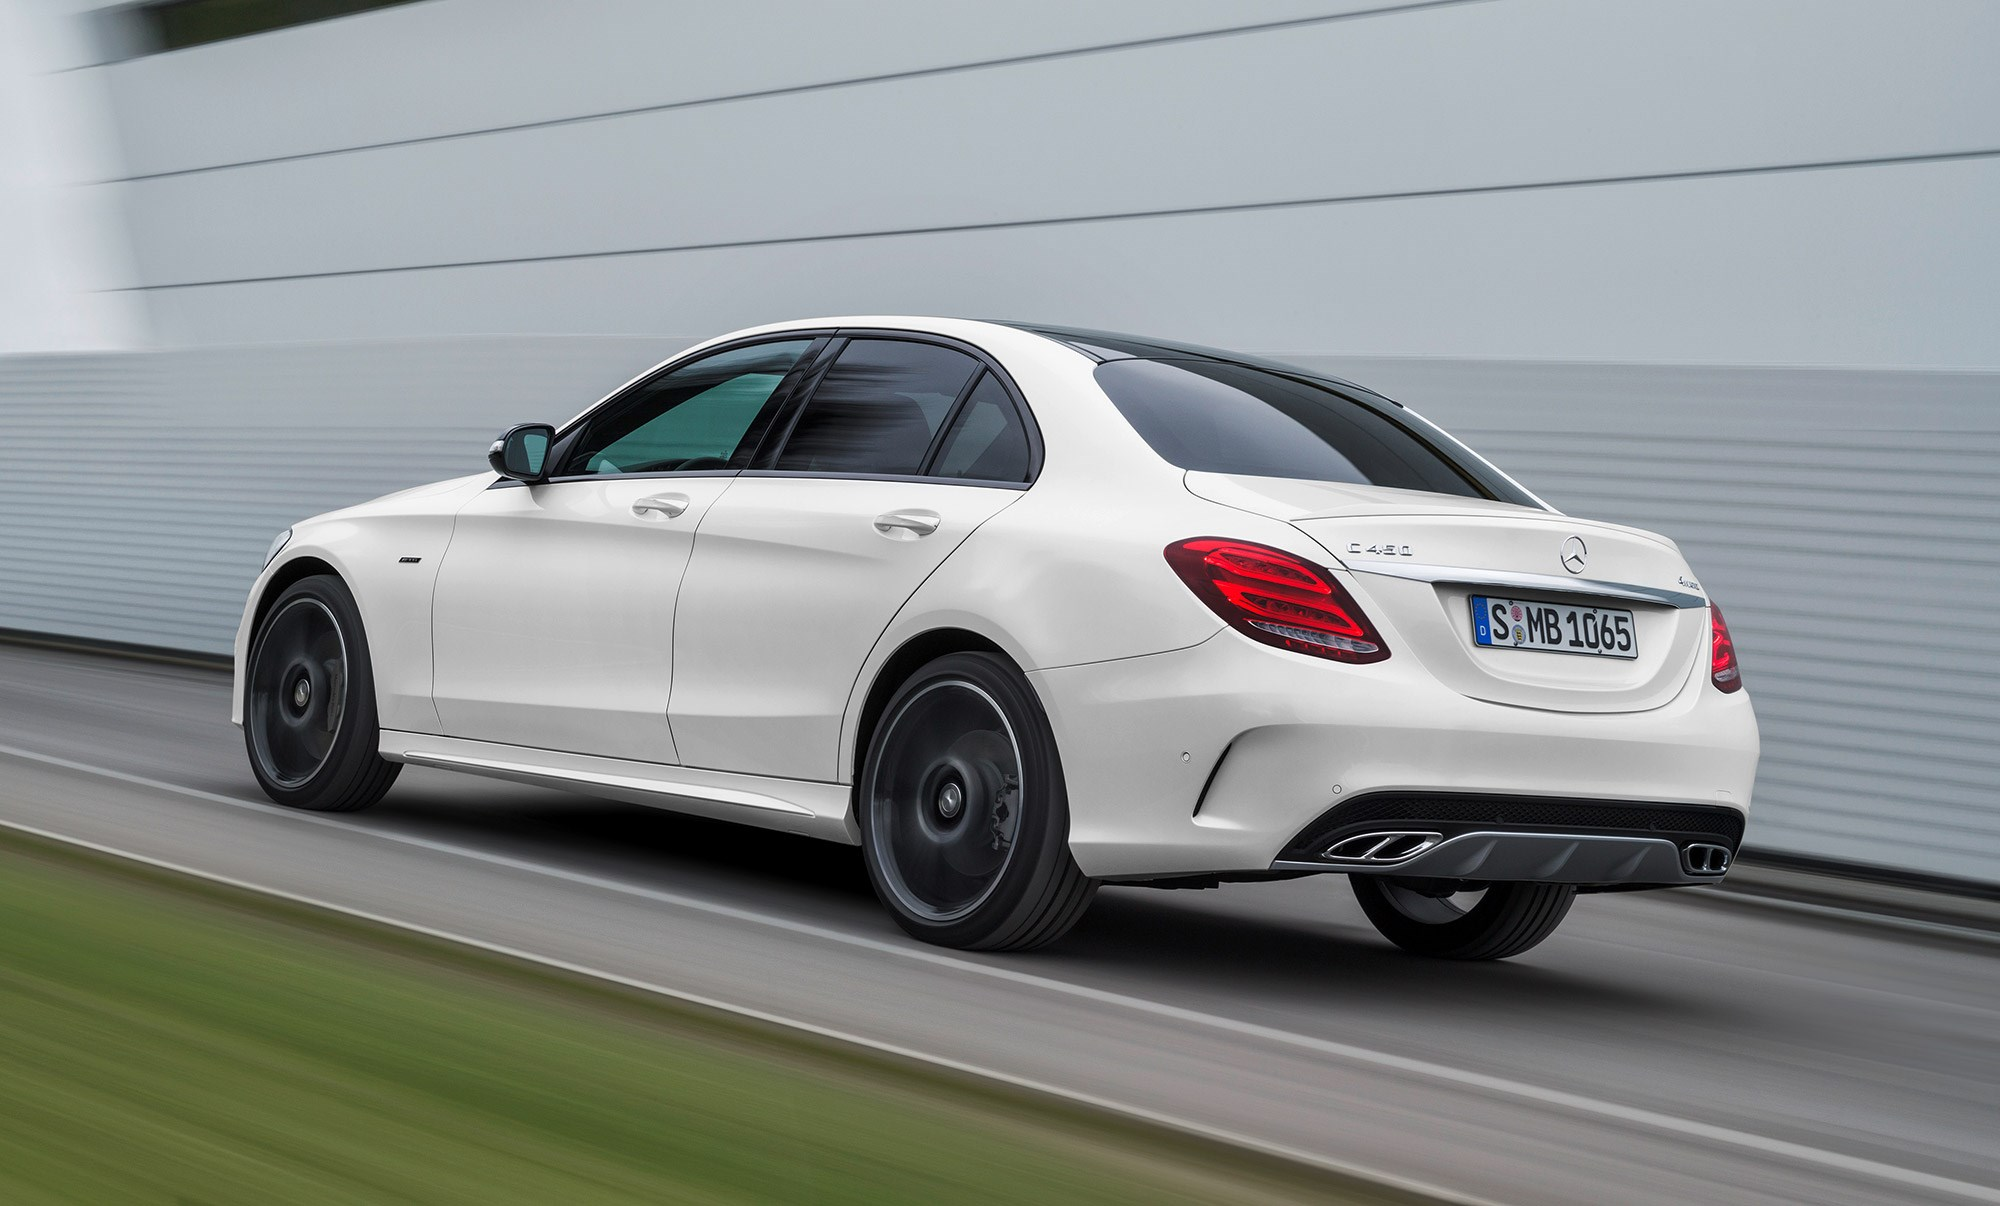 Mercedes c450 amg 4matic 2015 review by car magazine for Mercedes benz insurance cost